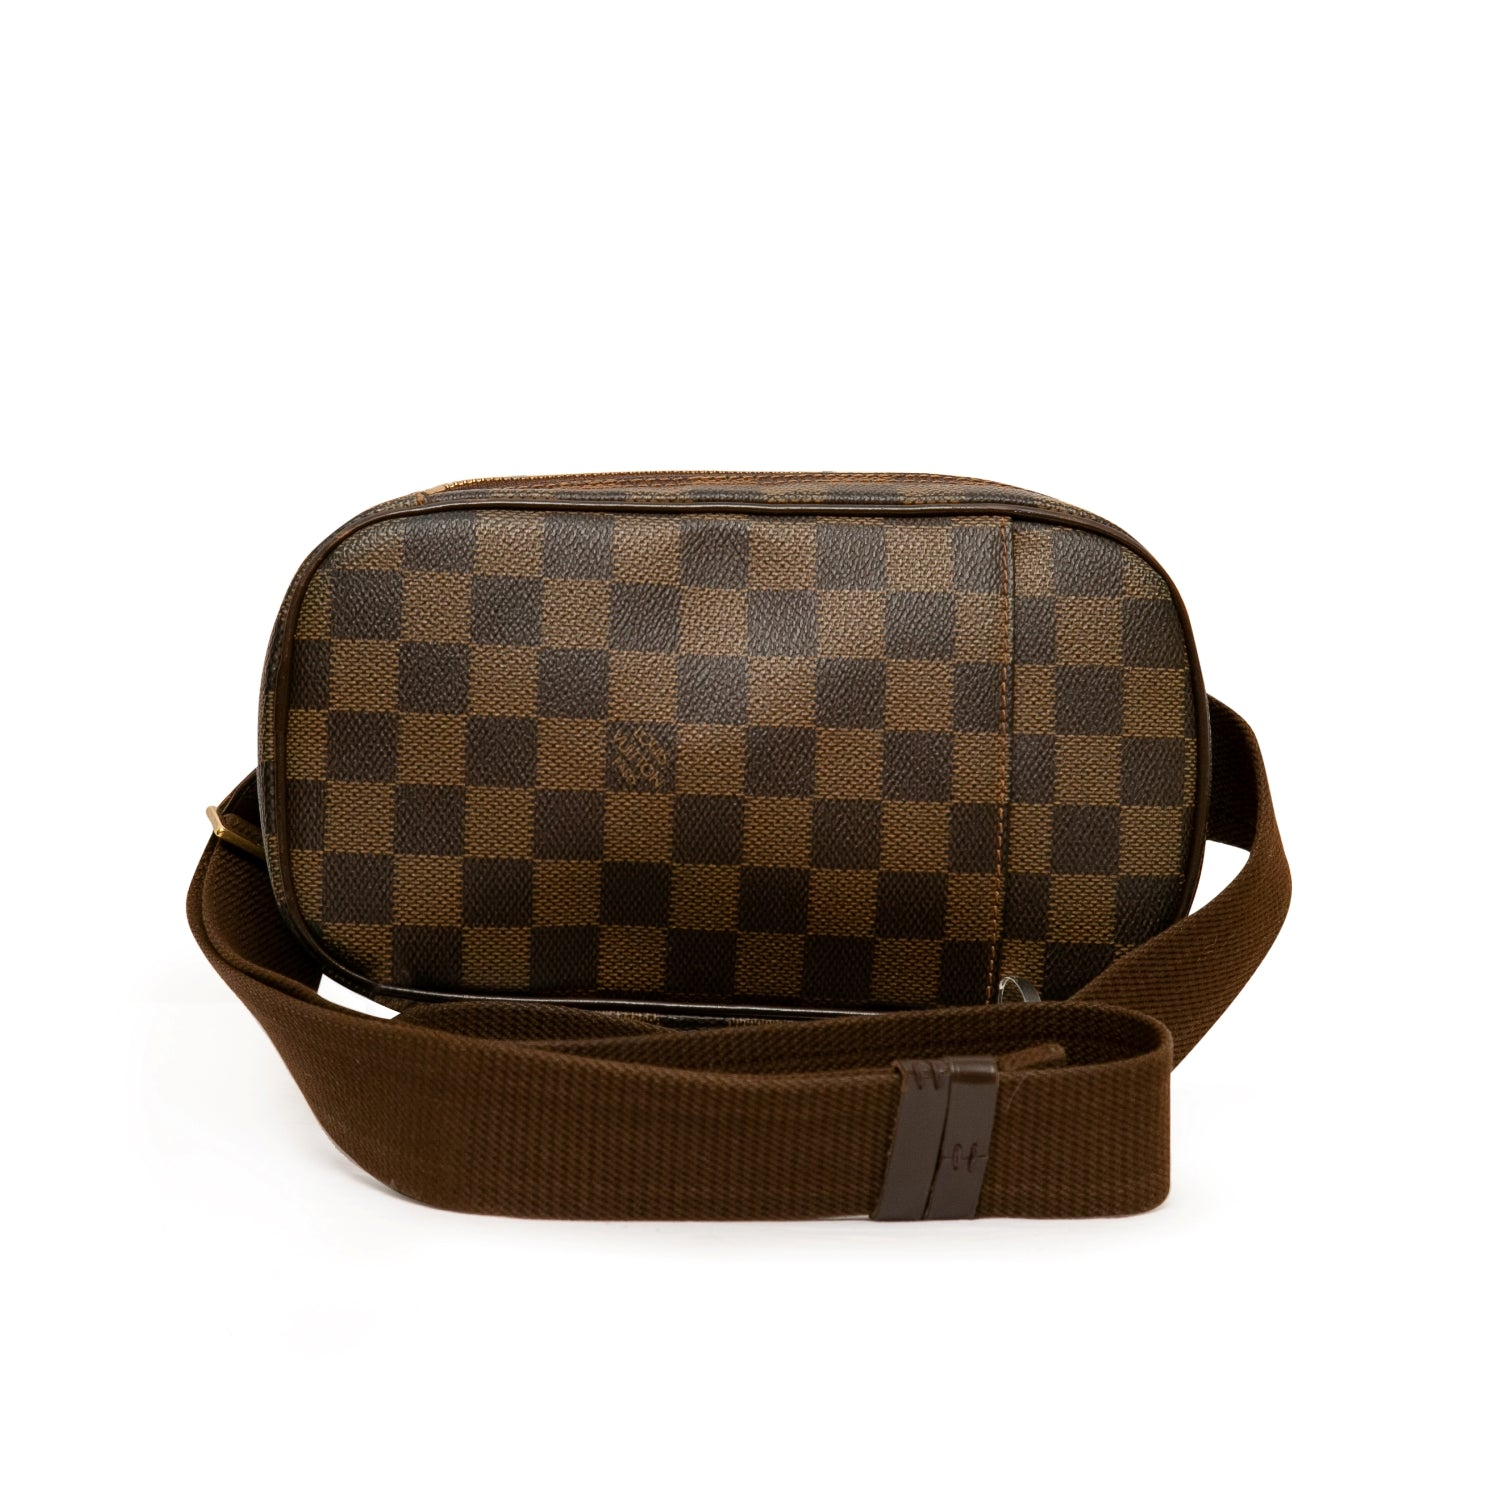 ladiesoflux - Louis Vuitton Pochette Gange Damier Ebene - Ladies Of Lux - Handbag